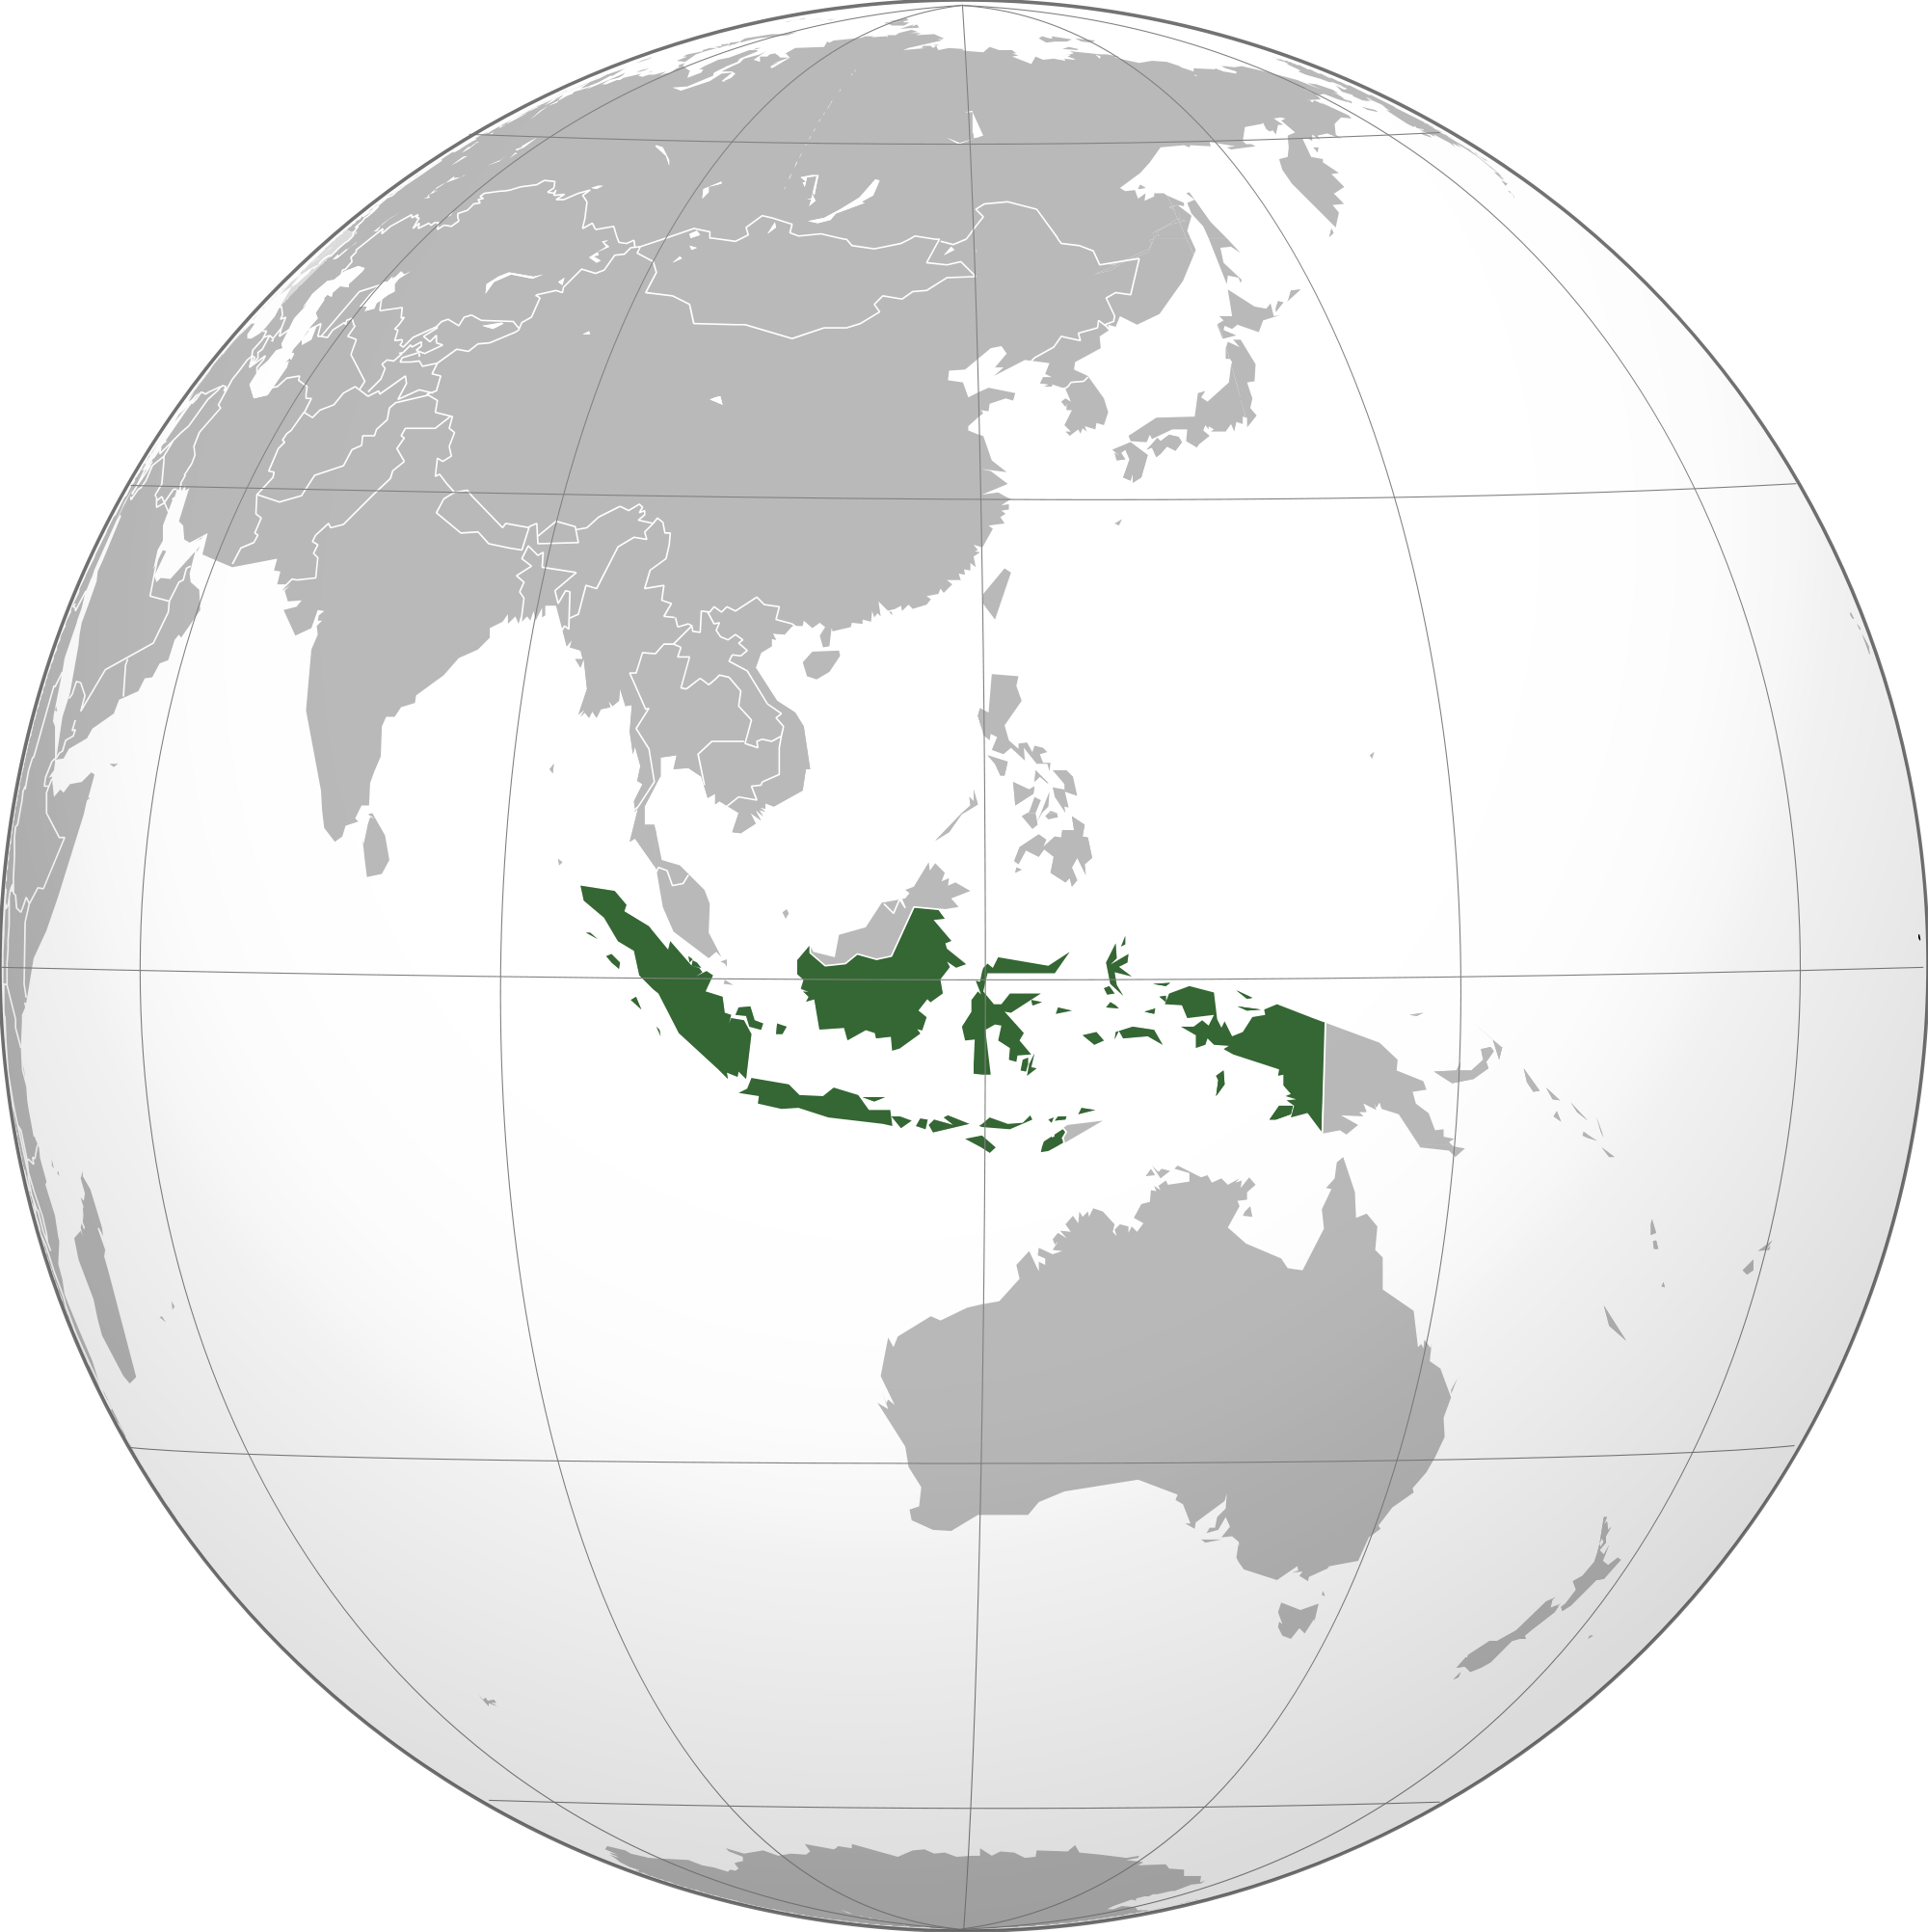 Location of the Indonesia in the World Map